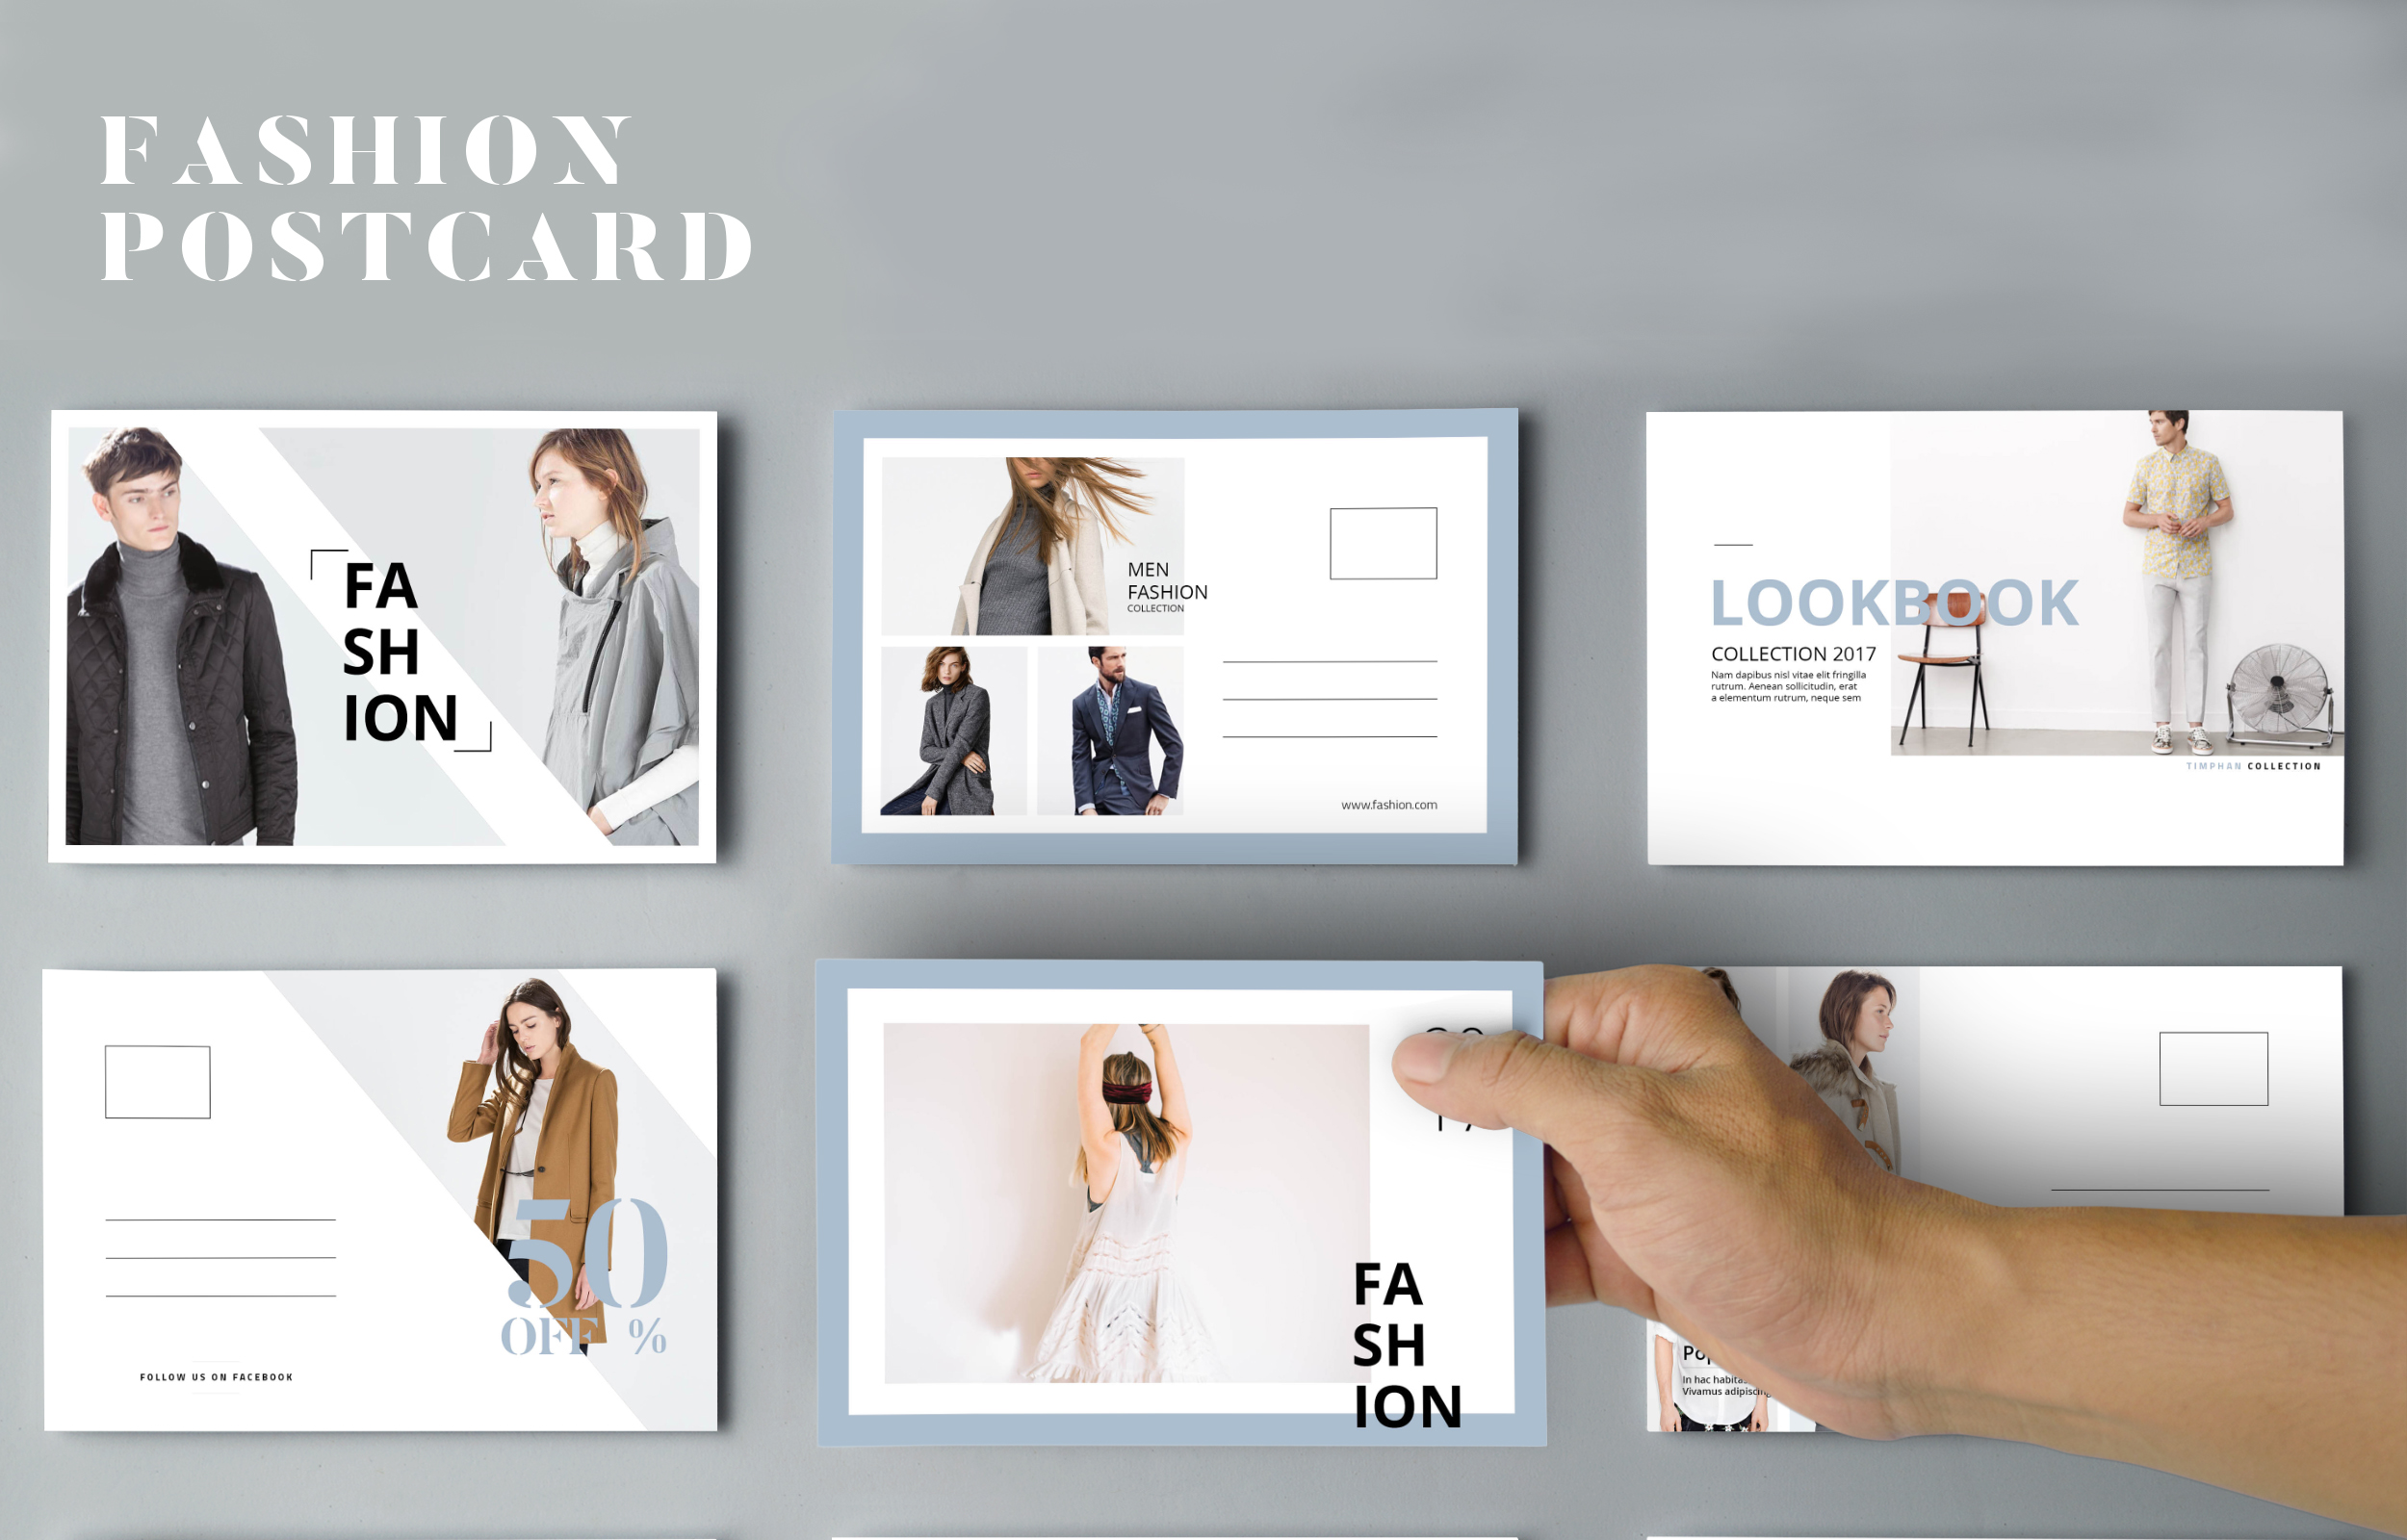 Ladypreneur Fashion Postcard Flyers  Set Of  Editorial Postcards